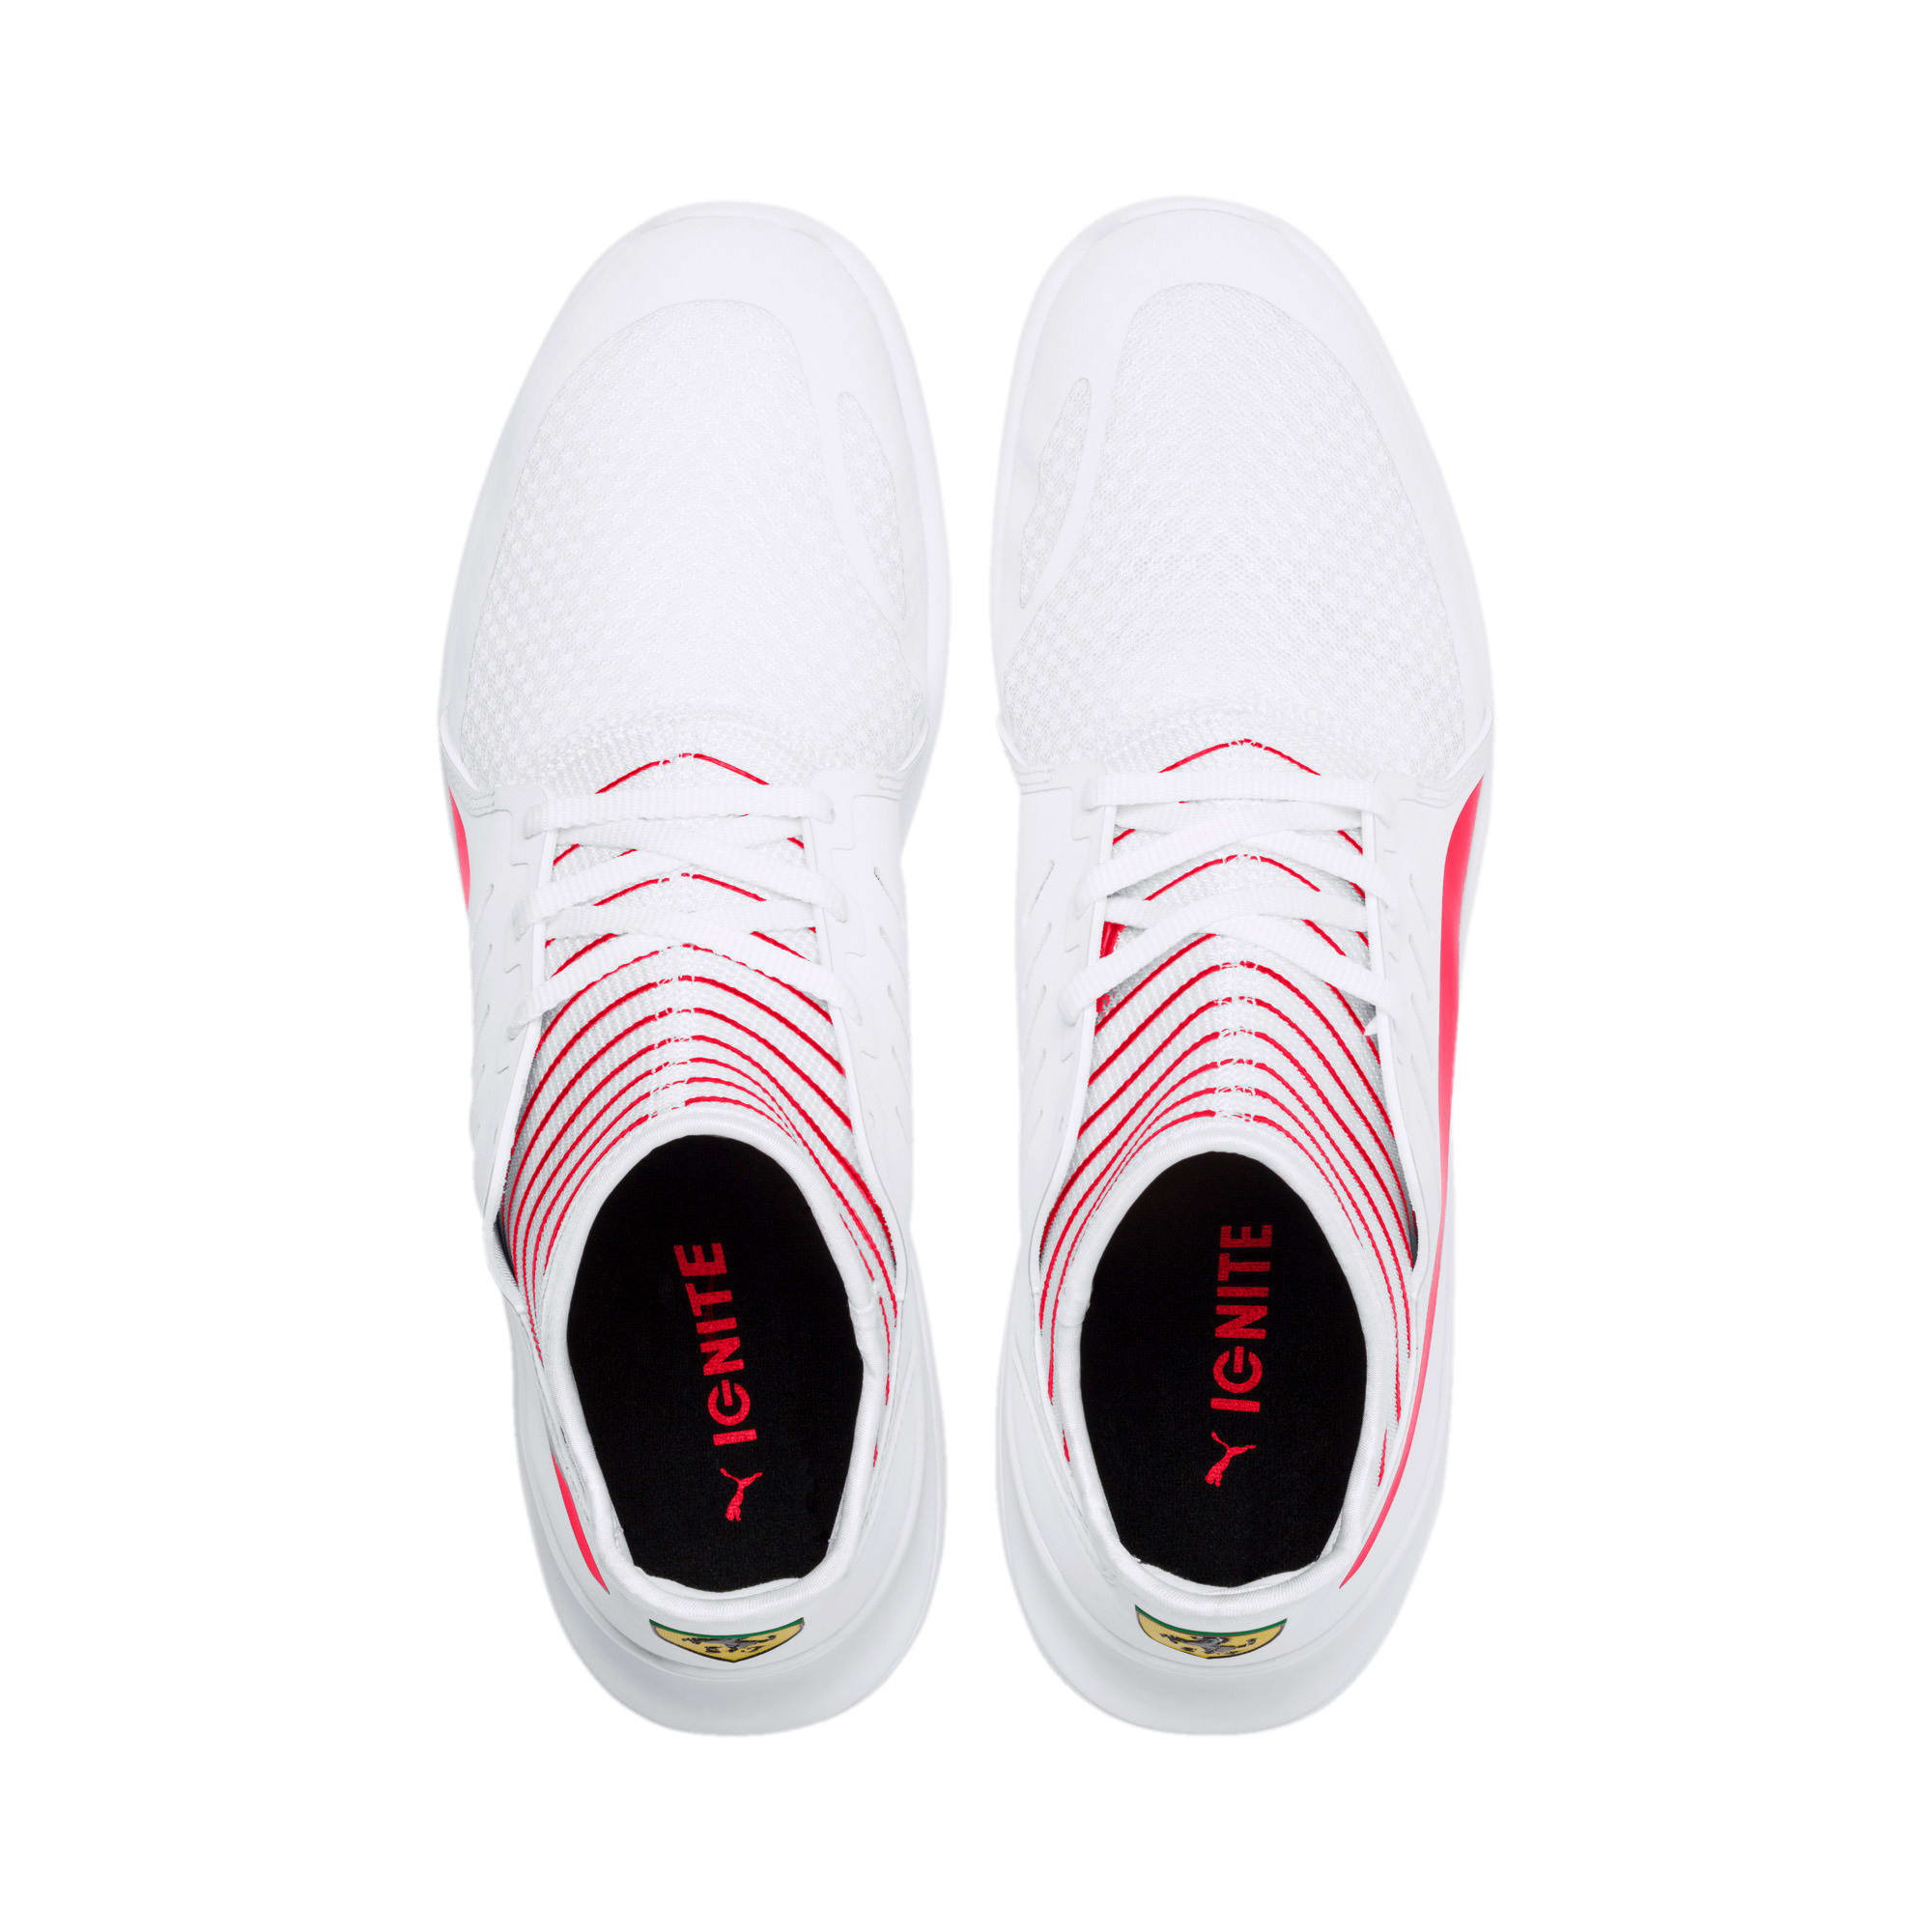 Thumbnail 7 of Scuderia Ferrari Evo Cat Mace Sneakers, Puma White-Rosso Corsa, medium